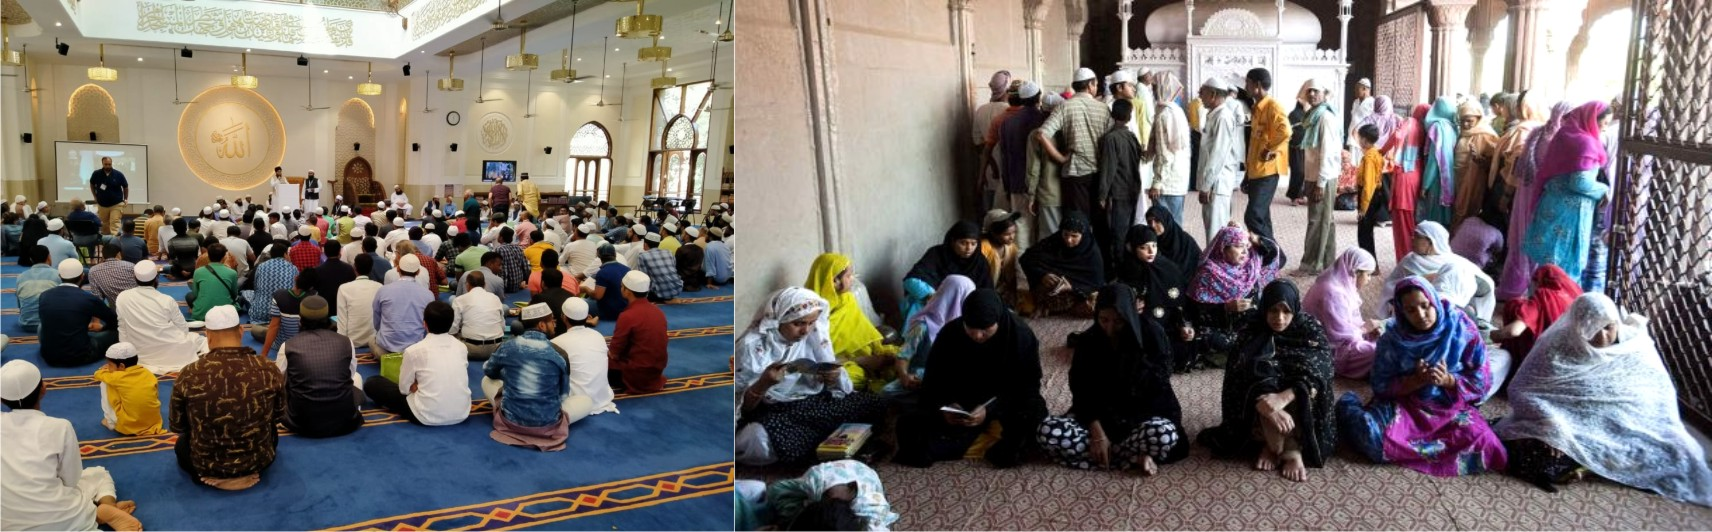 Masjid Management Stand Up to the Call of  Time or Make Way for Others